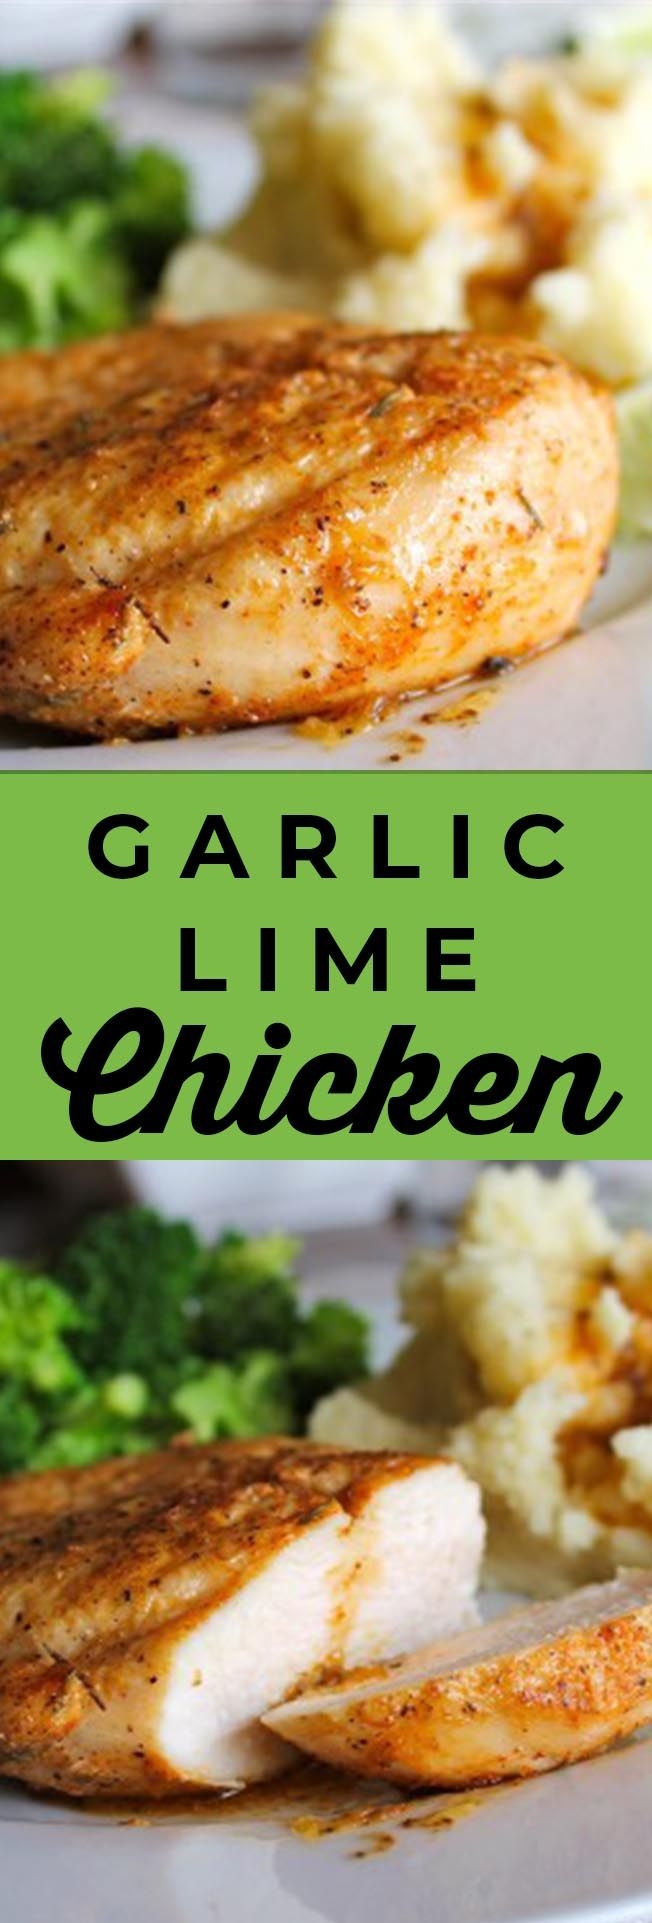 Garlic Lime Chicken from The Food Charlatan.